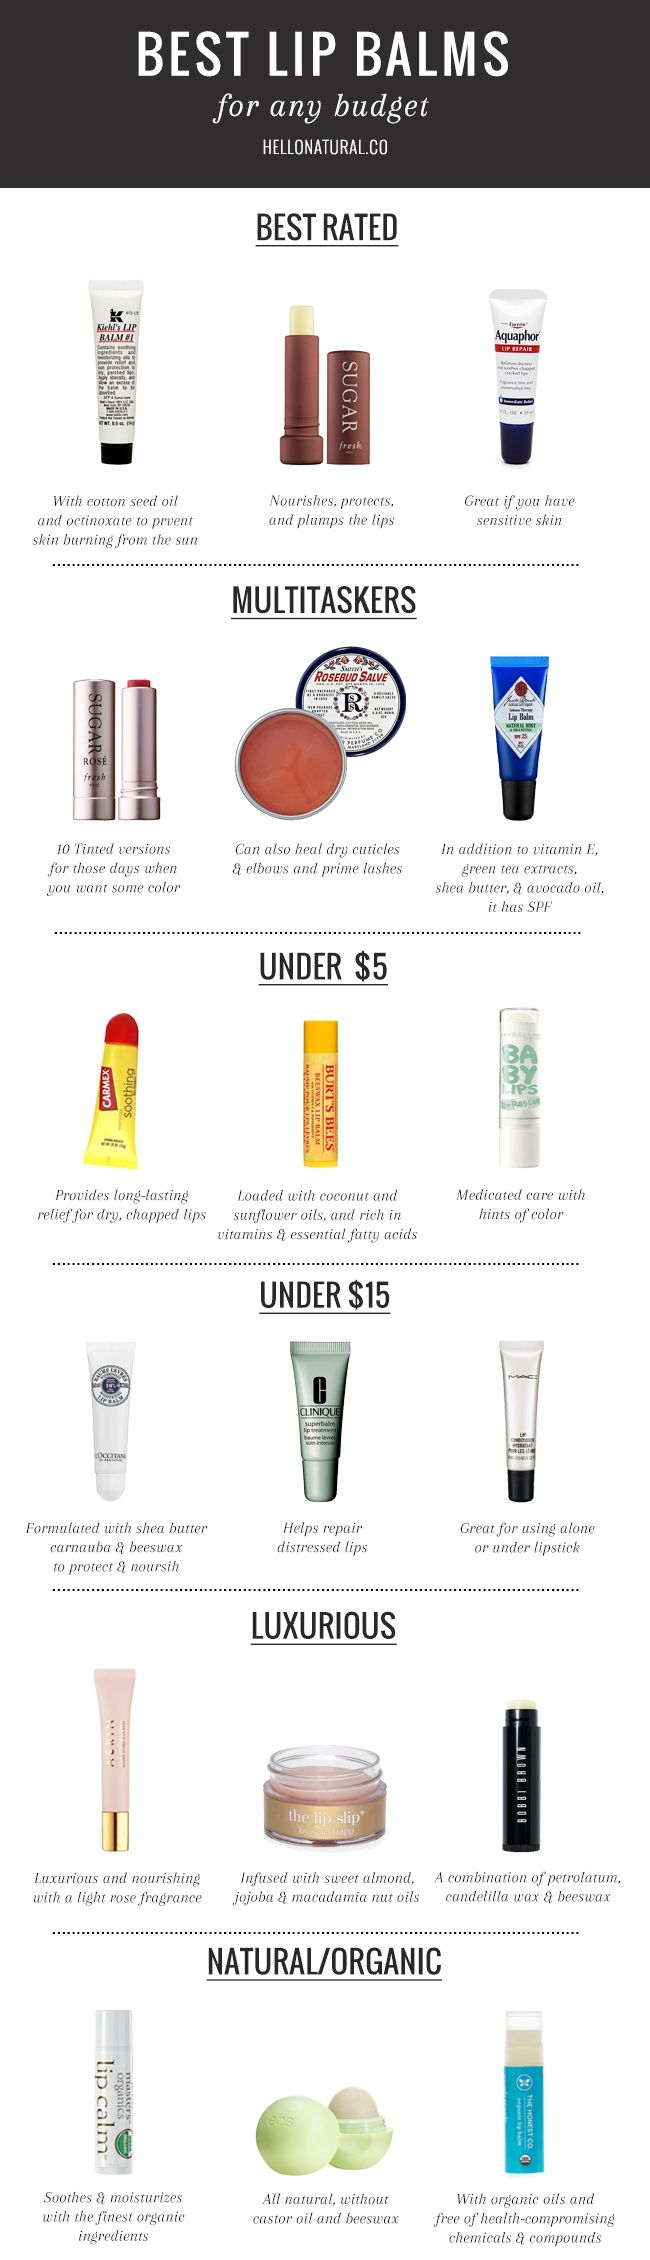 The Best Lip Balms for Any Budget | http://hellonatural.co/best-lip-balms-budget/